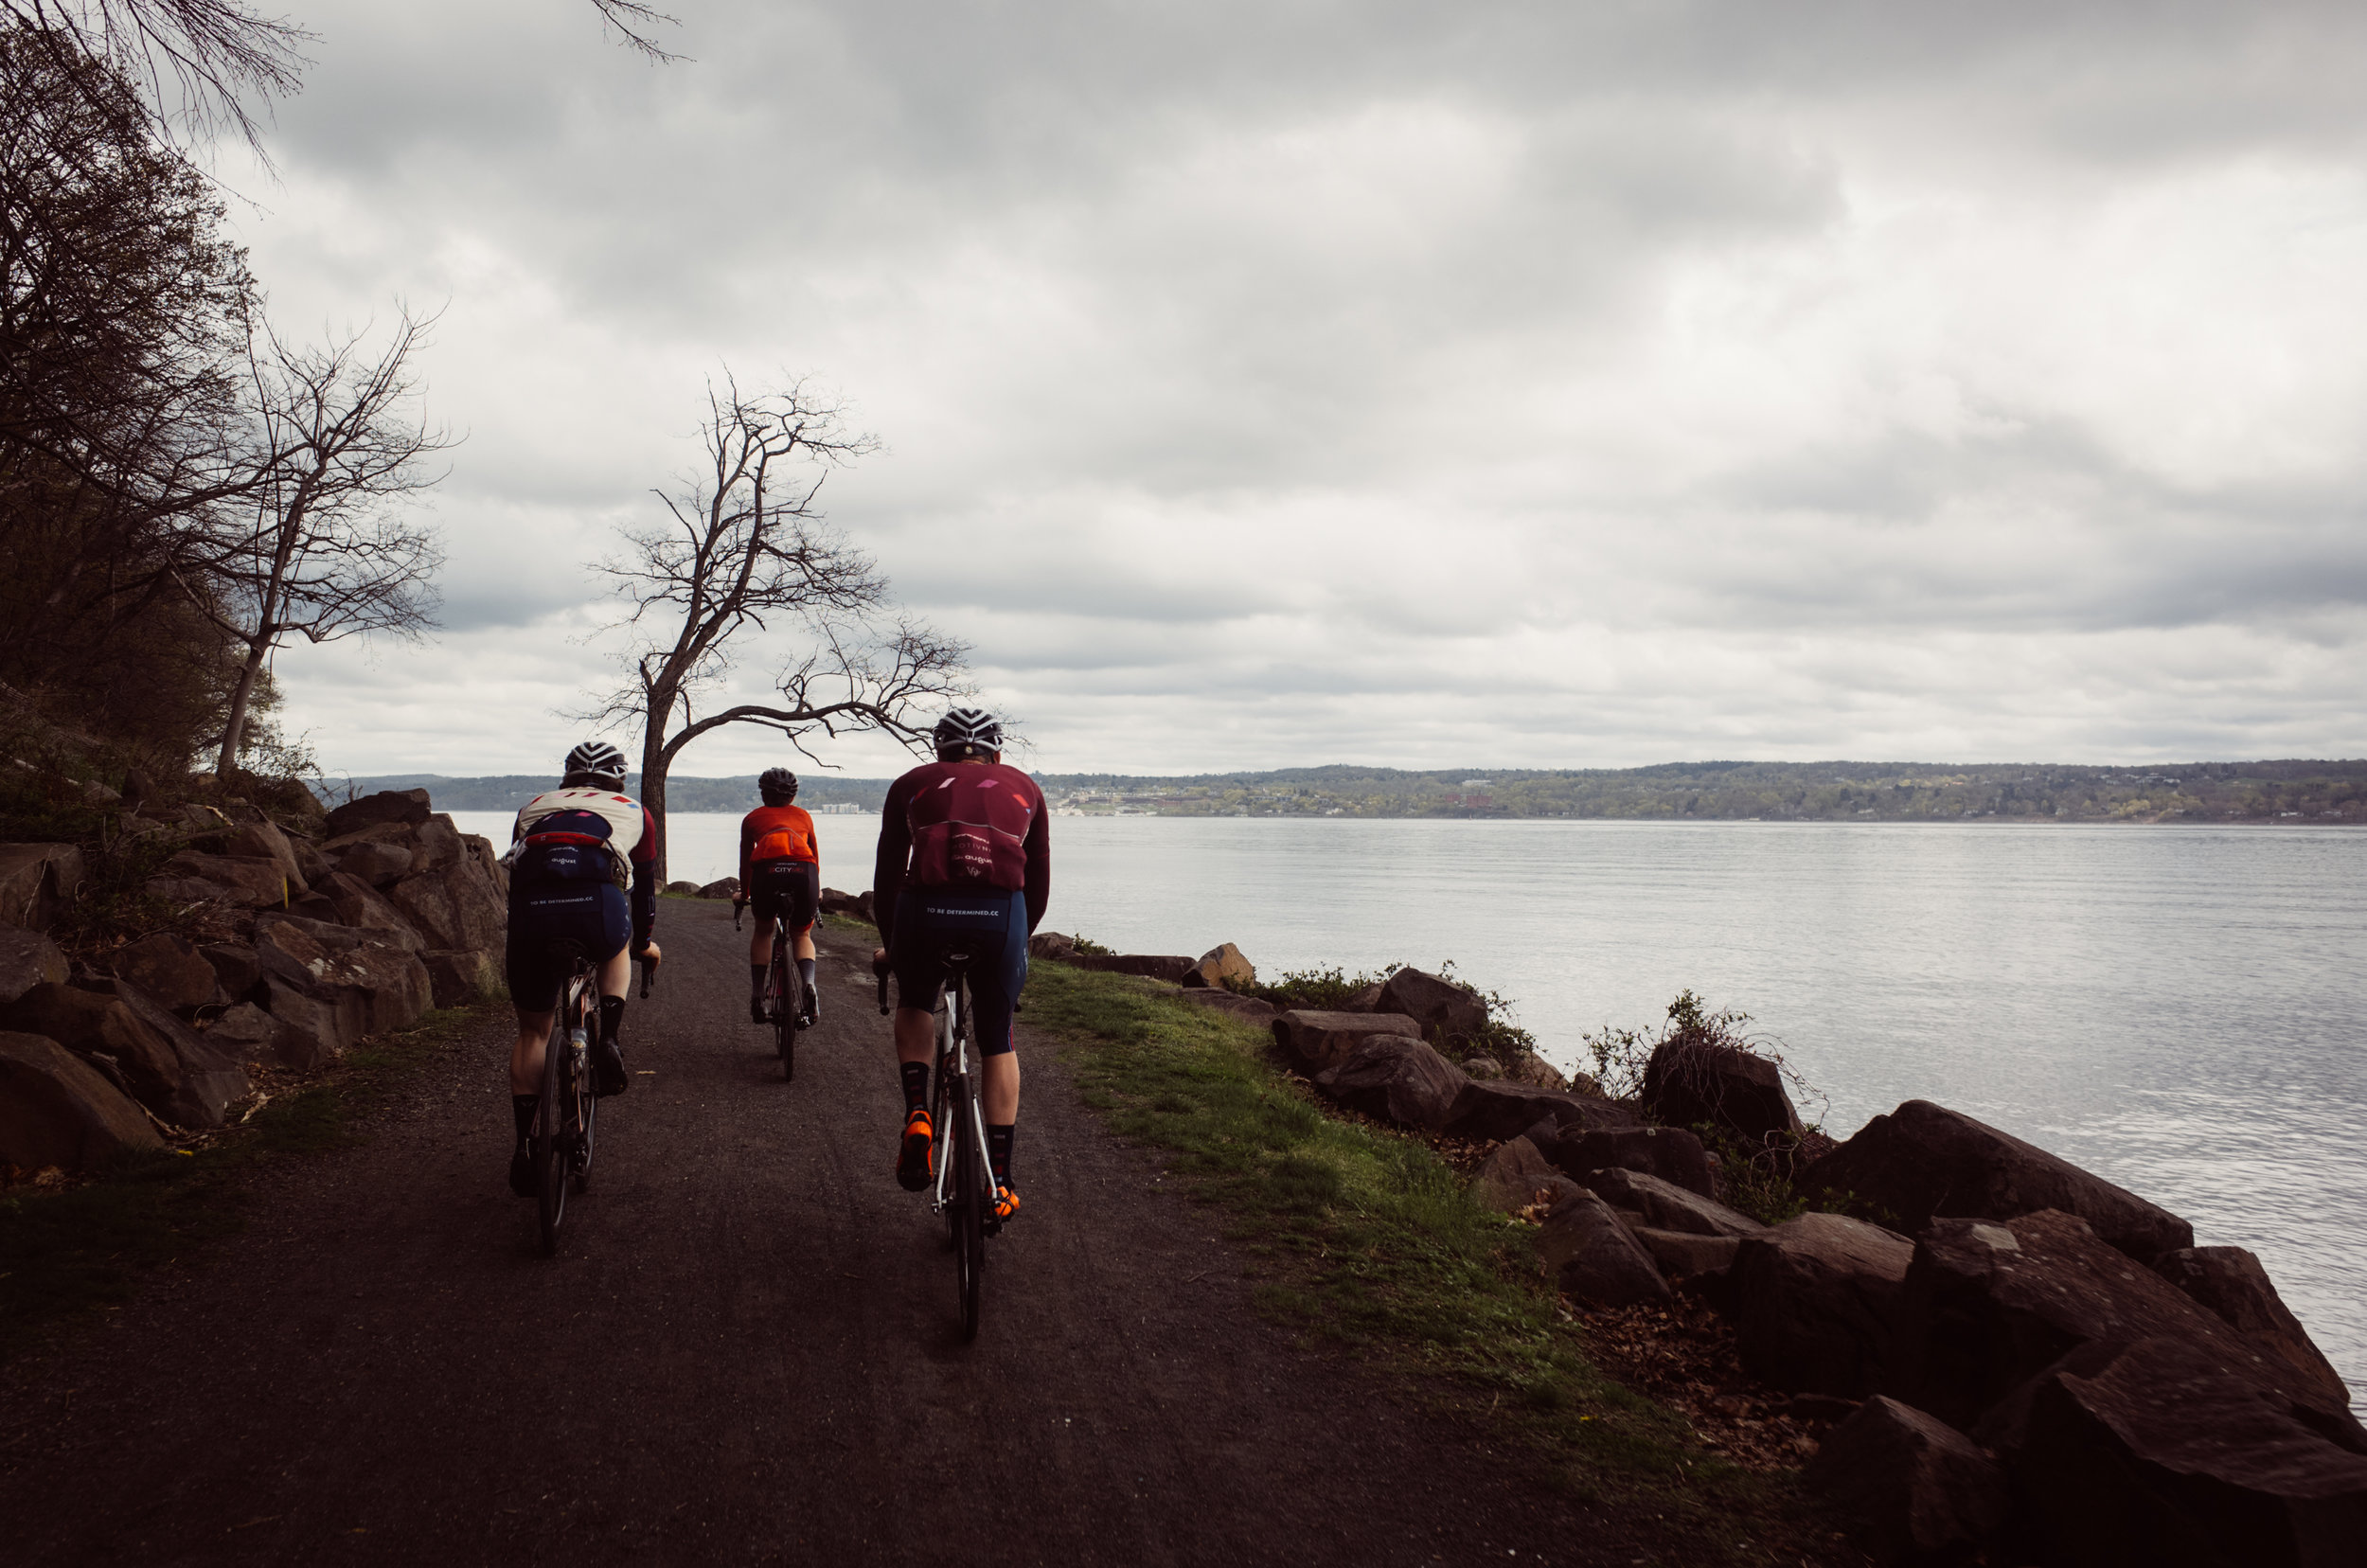 The clouds may have rolled in for stretches of our Easter Sunday ride but that didn't stop us from sneaking in time on some of our favorite roads and trails.